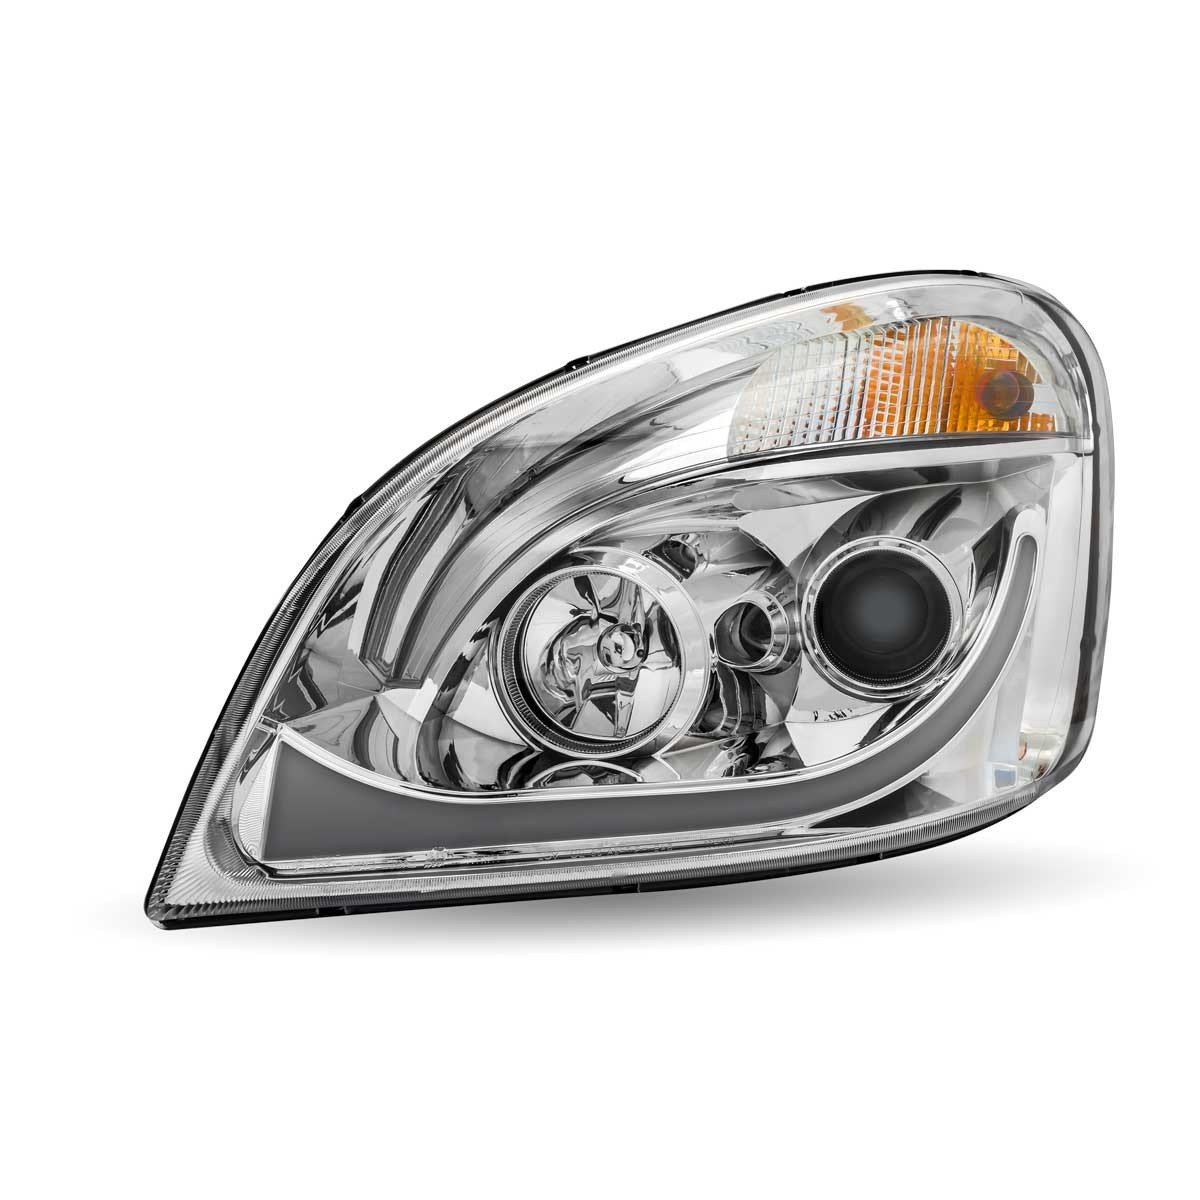 LED Projector Headlight for Freightliner Cascadia